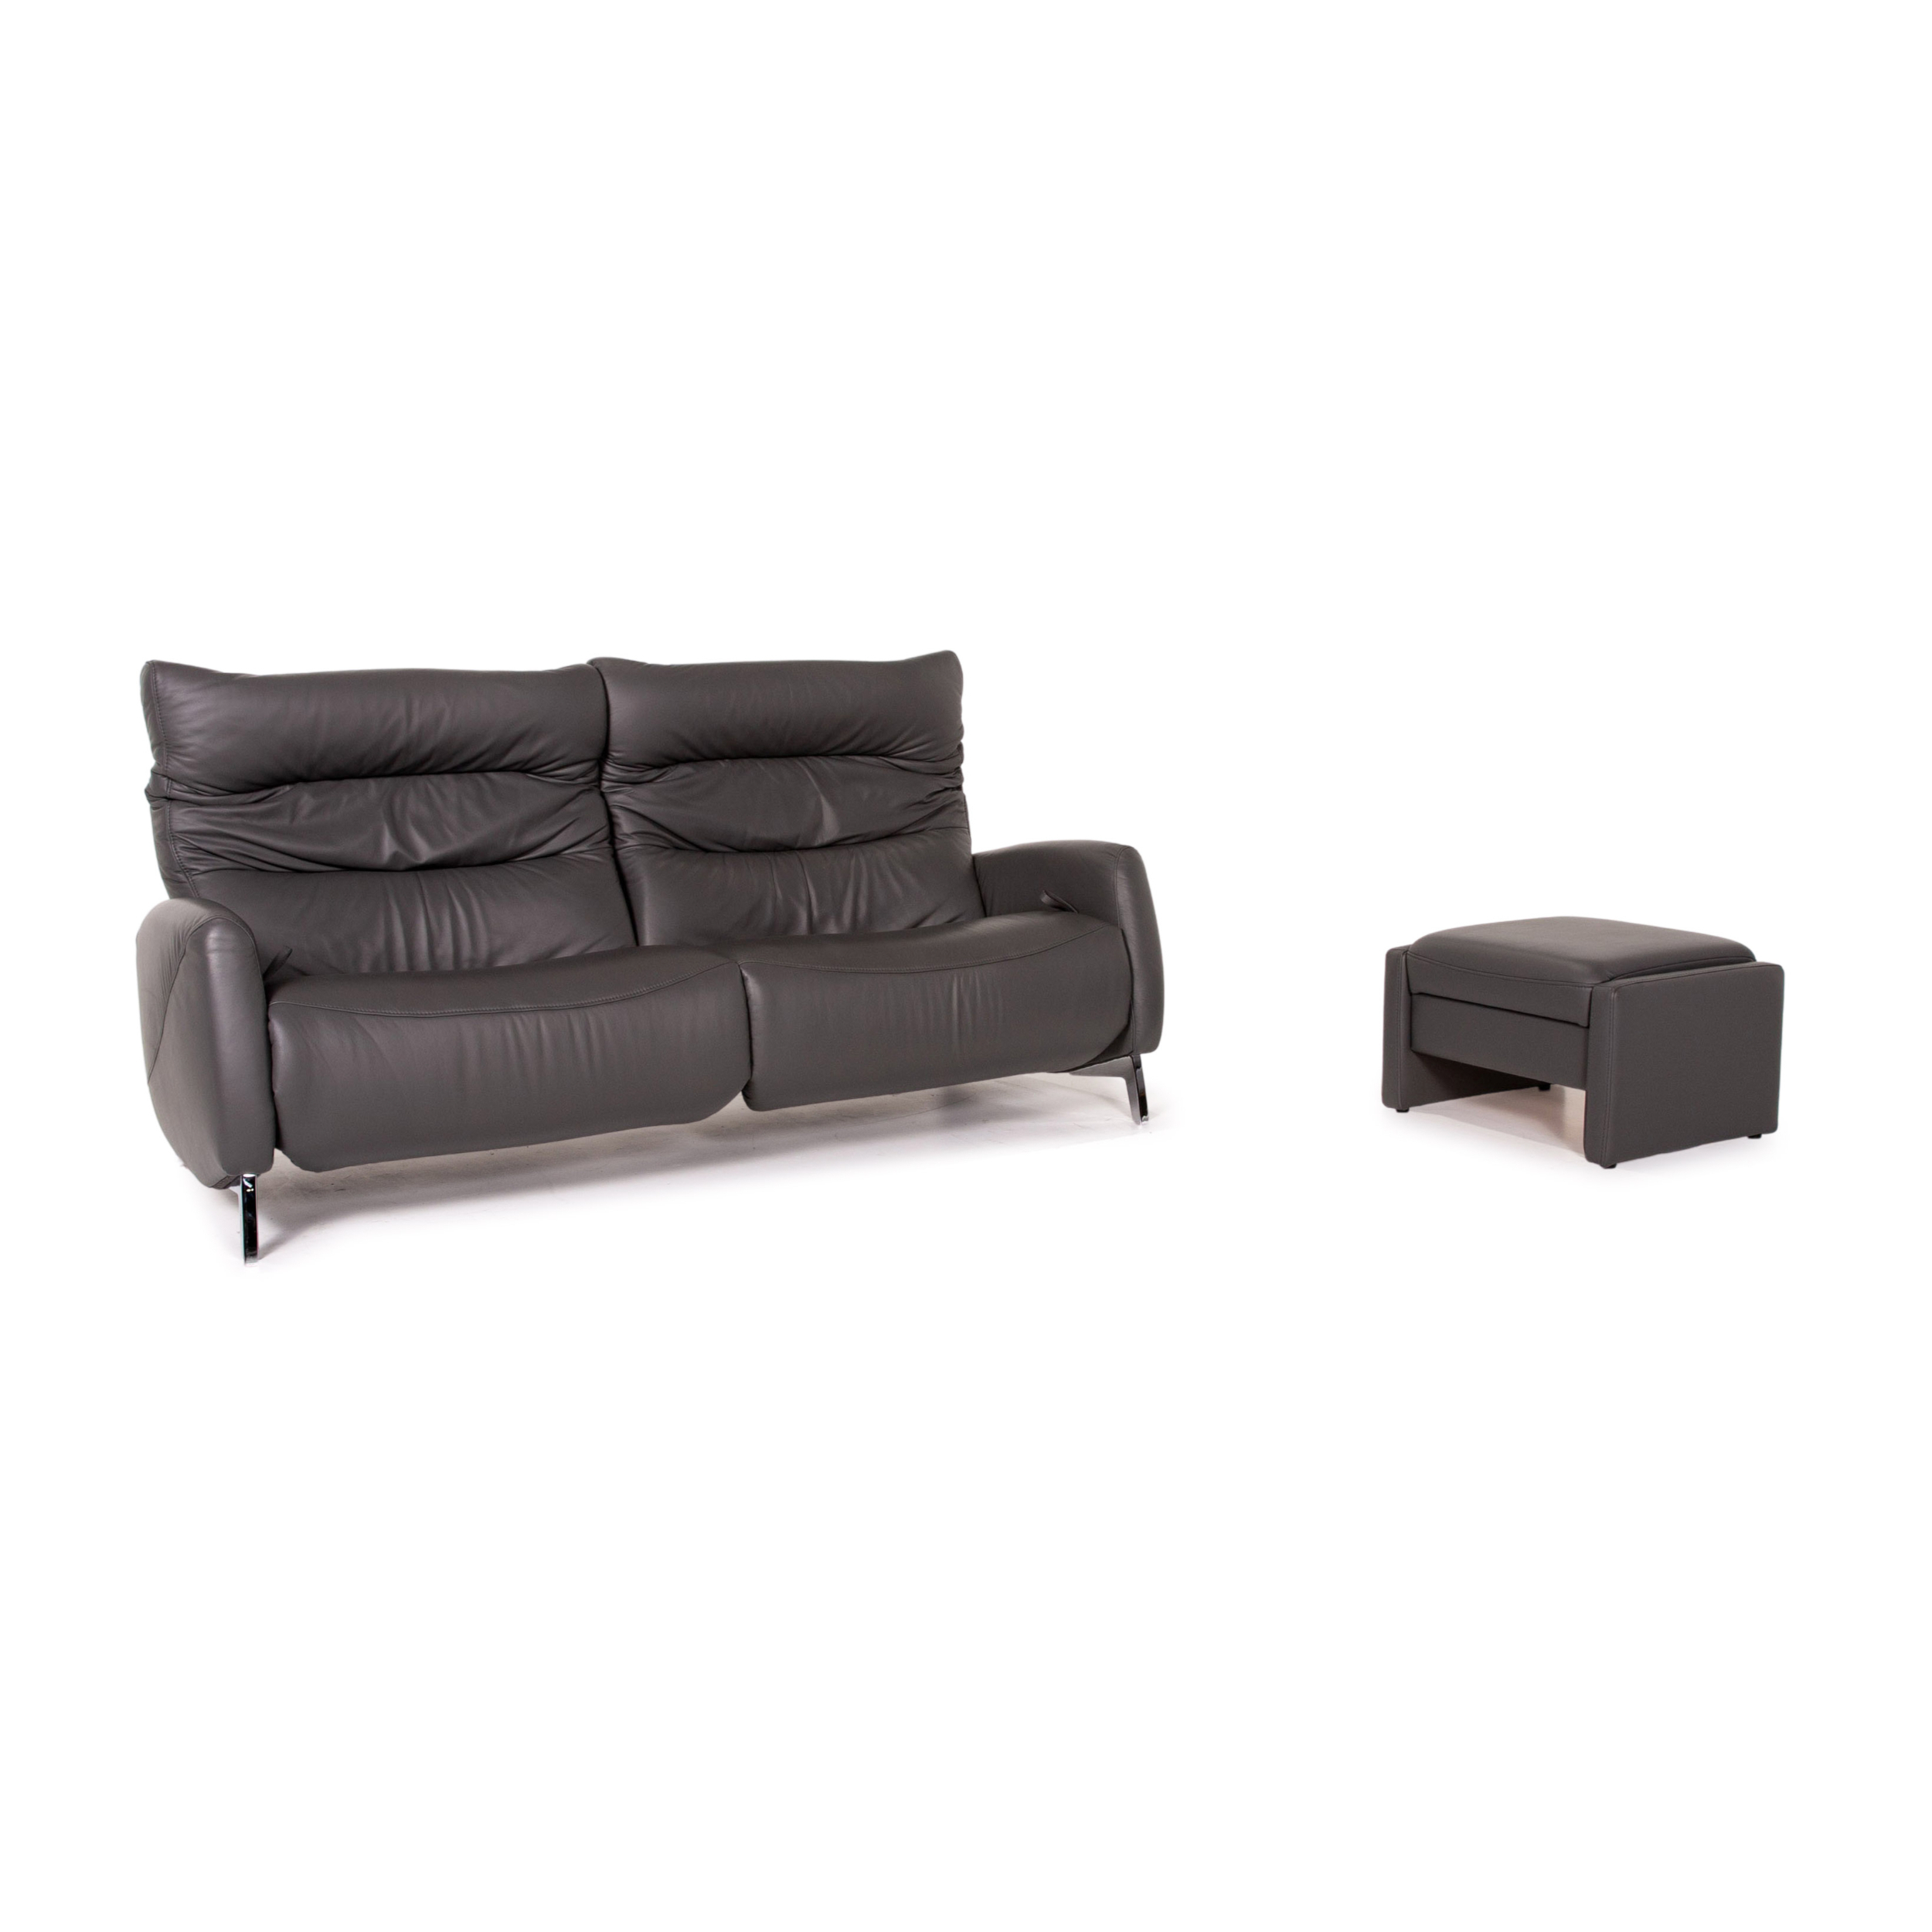 Mondo Recero Leather Sofa Gray Two Seater Function Relax Function Couch 14933 Komfort Vinterior